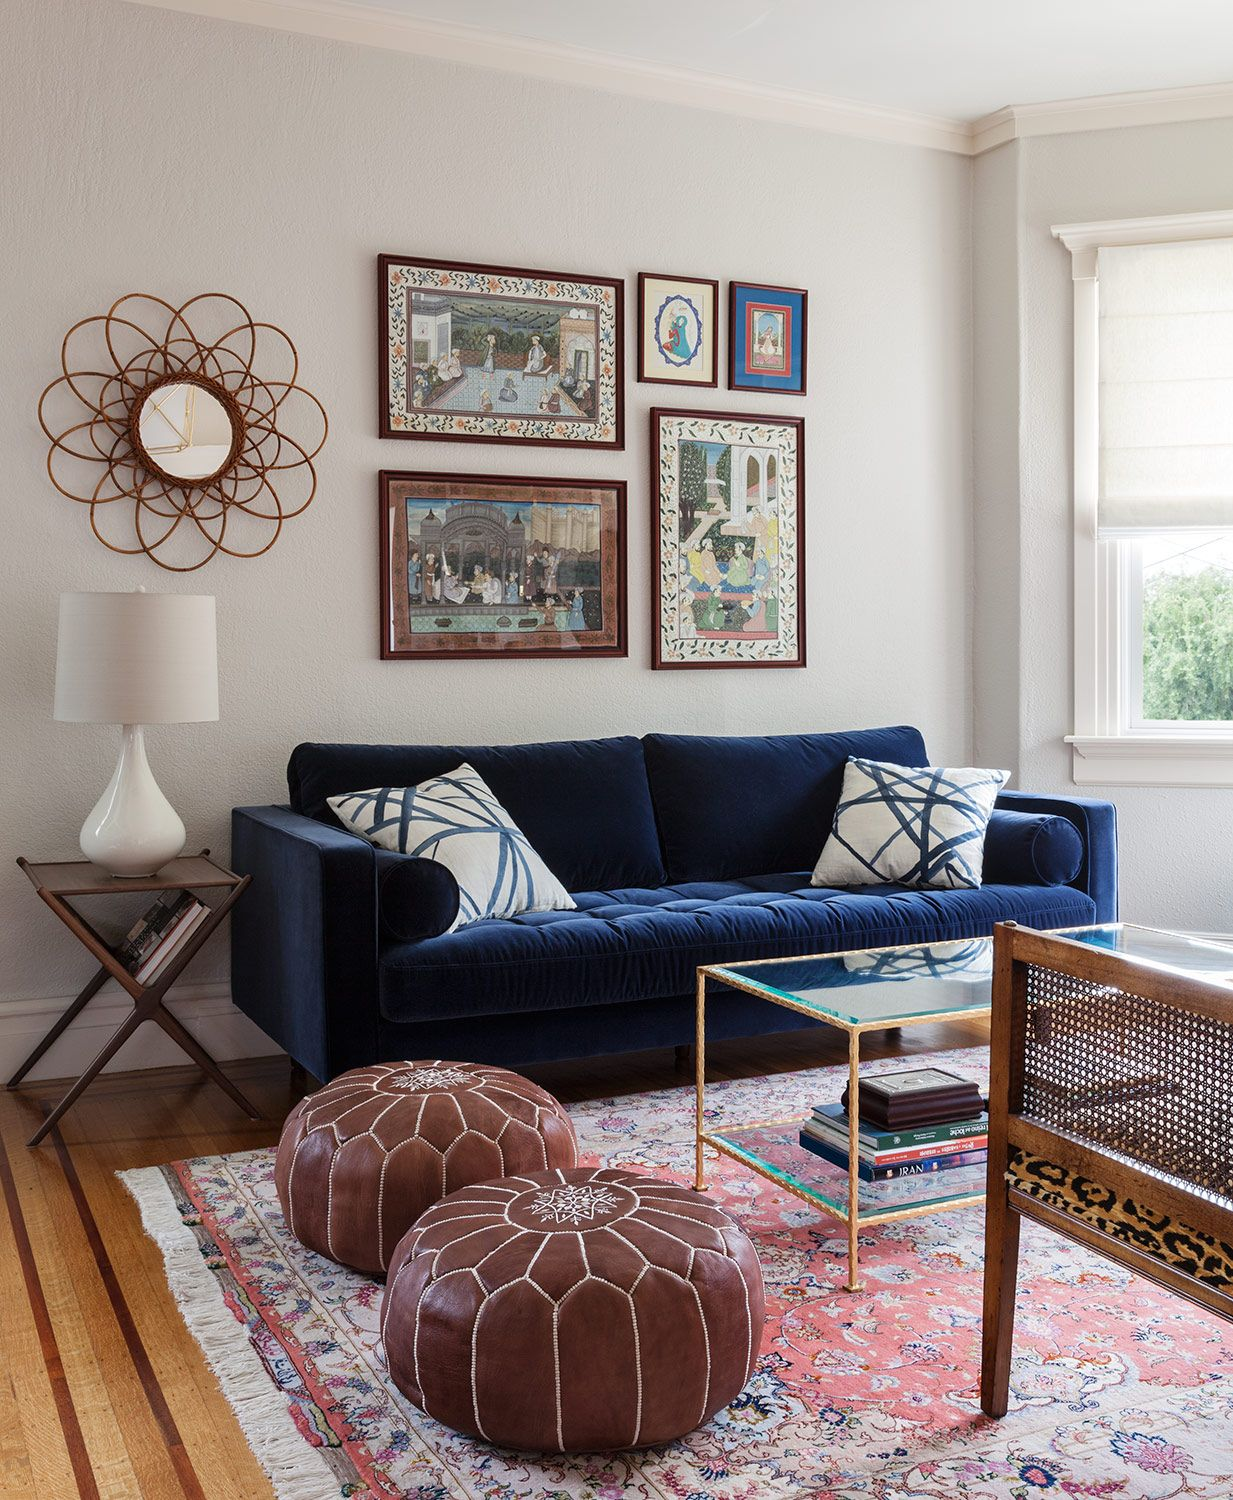 Christy allen designs san francisco noe valley project for Blue couch living room ideas